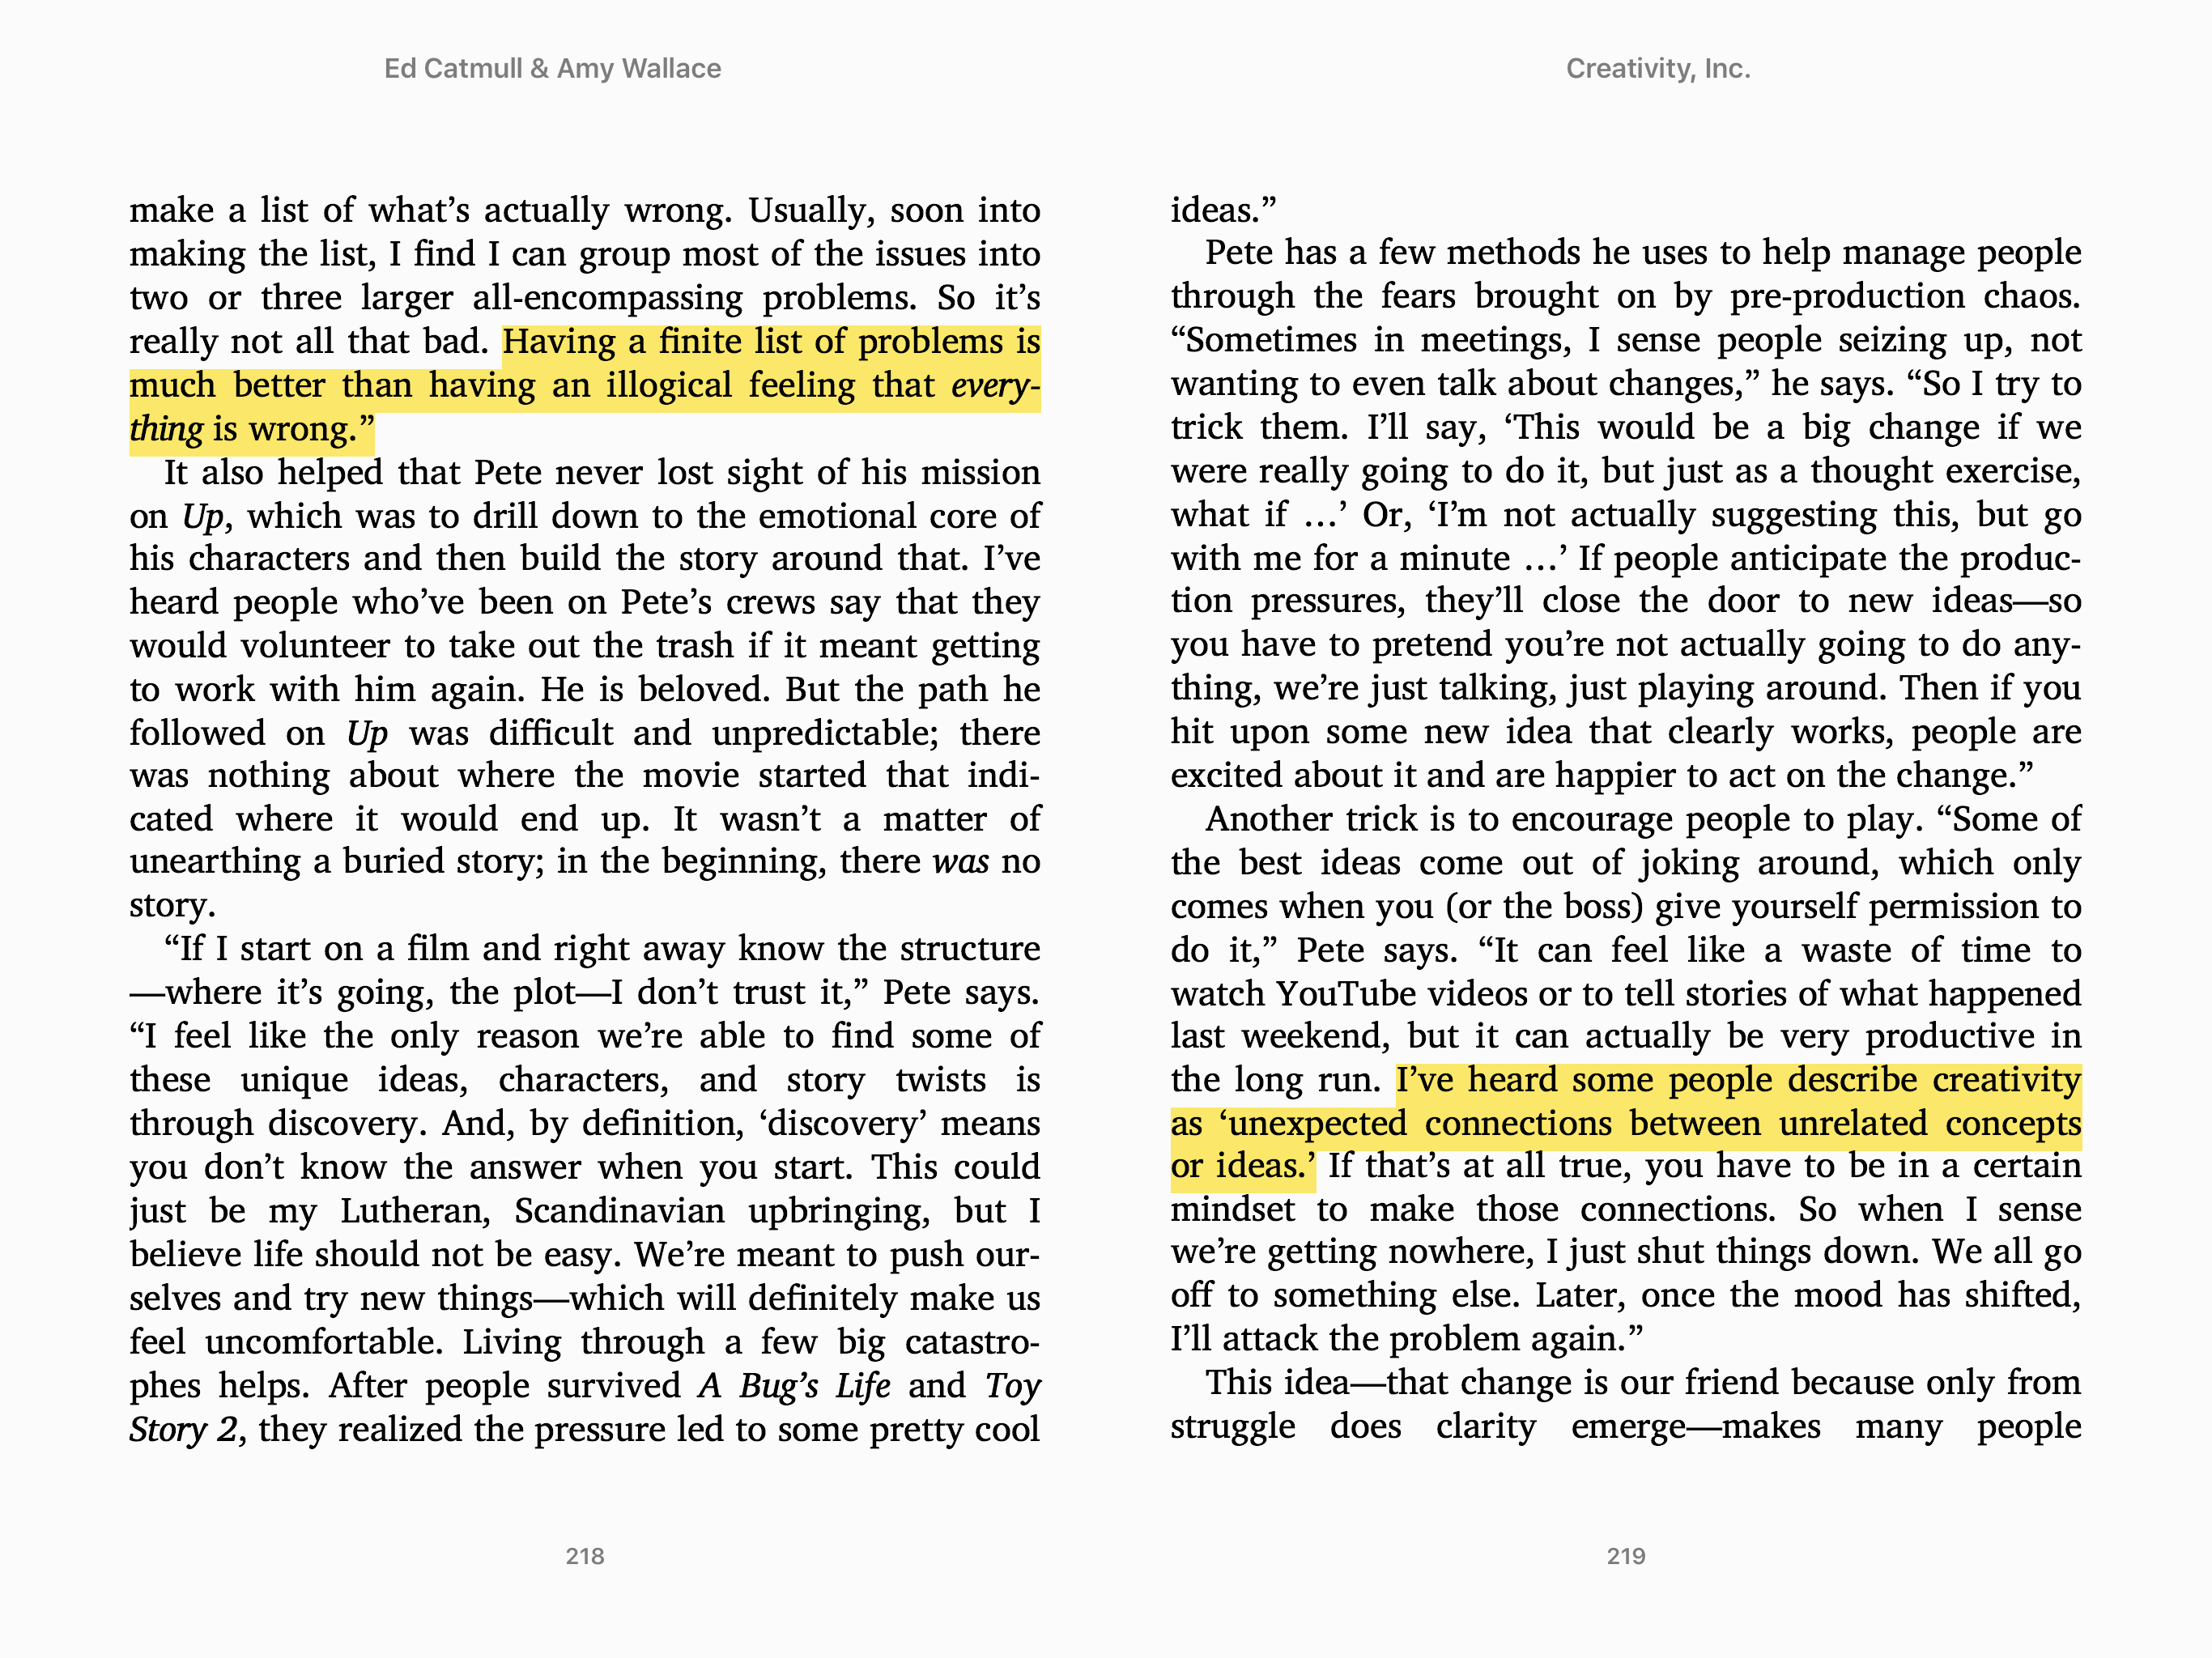 Highlighting in iBooks